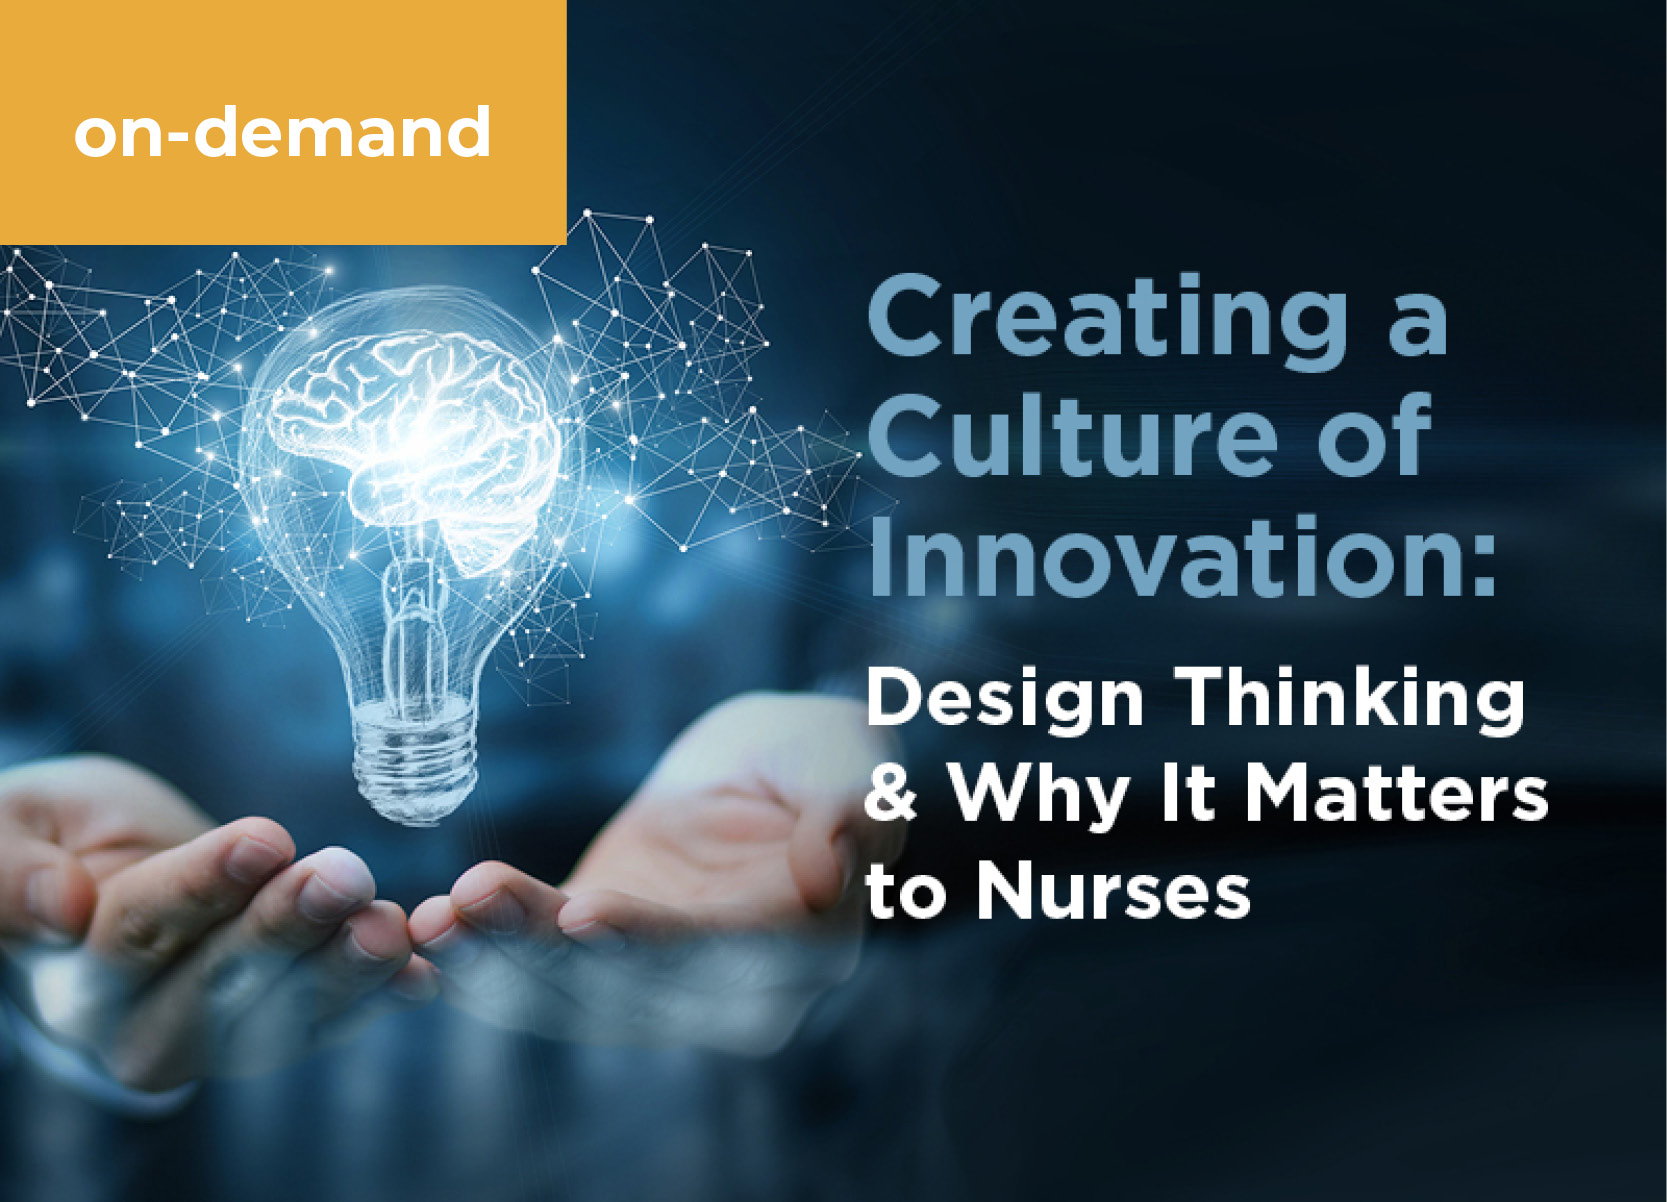 Creating a Culture of Innovation: Design Thinking and Why it Matters to Nurses